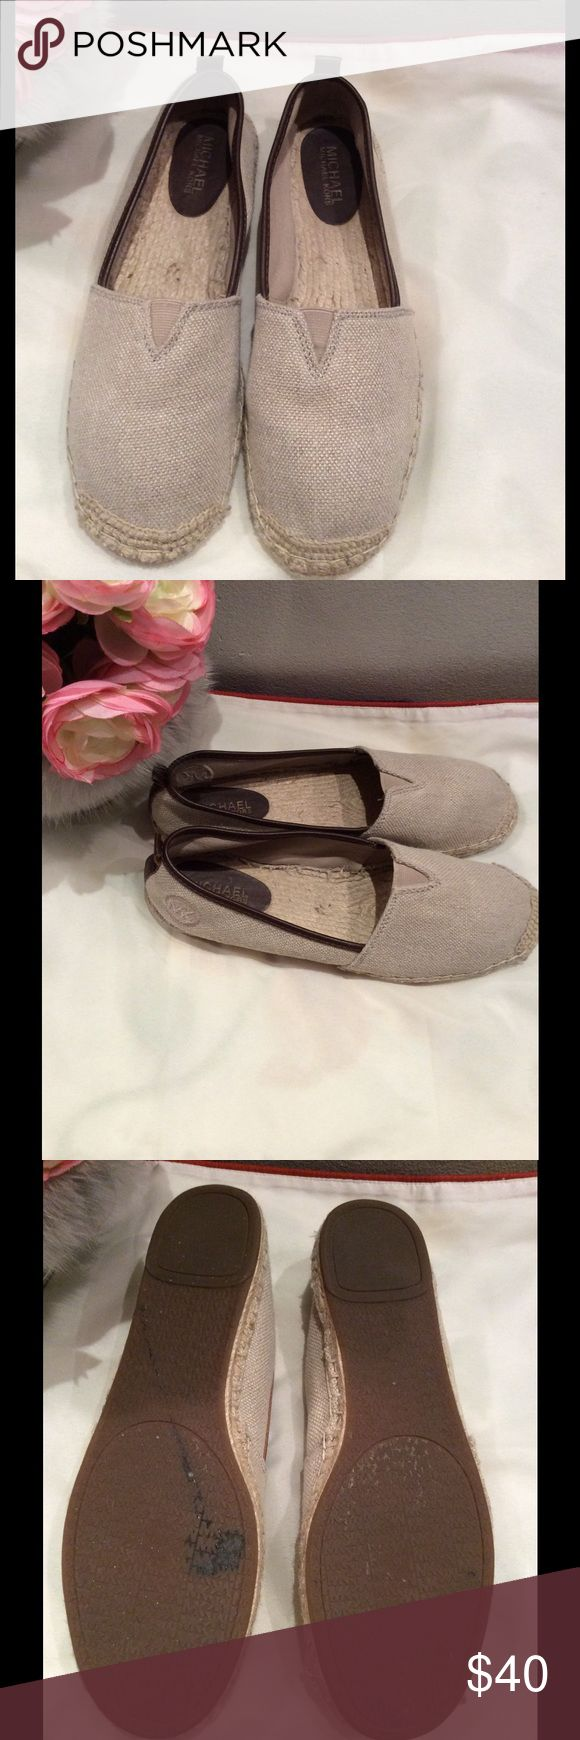 Michael Michael Kors Meg Slip On Women US9.5 Nude Michael Michael Kors Meg Slip On Women US 9.5 to 10 Nude Espadrille Pre Owned 1854 MICHAEL Michael Kors Shoes Flats & Loafers